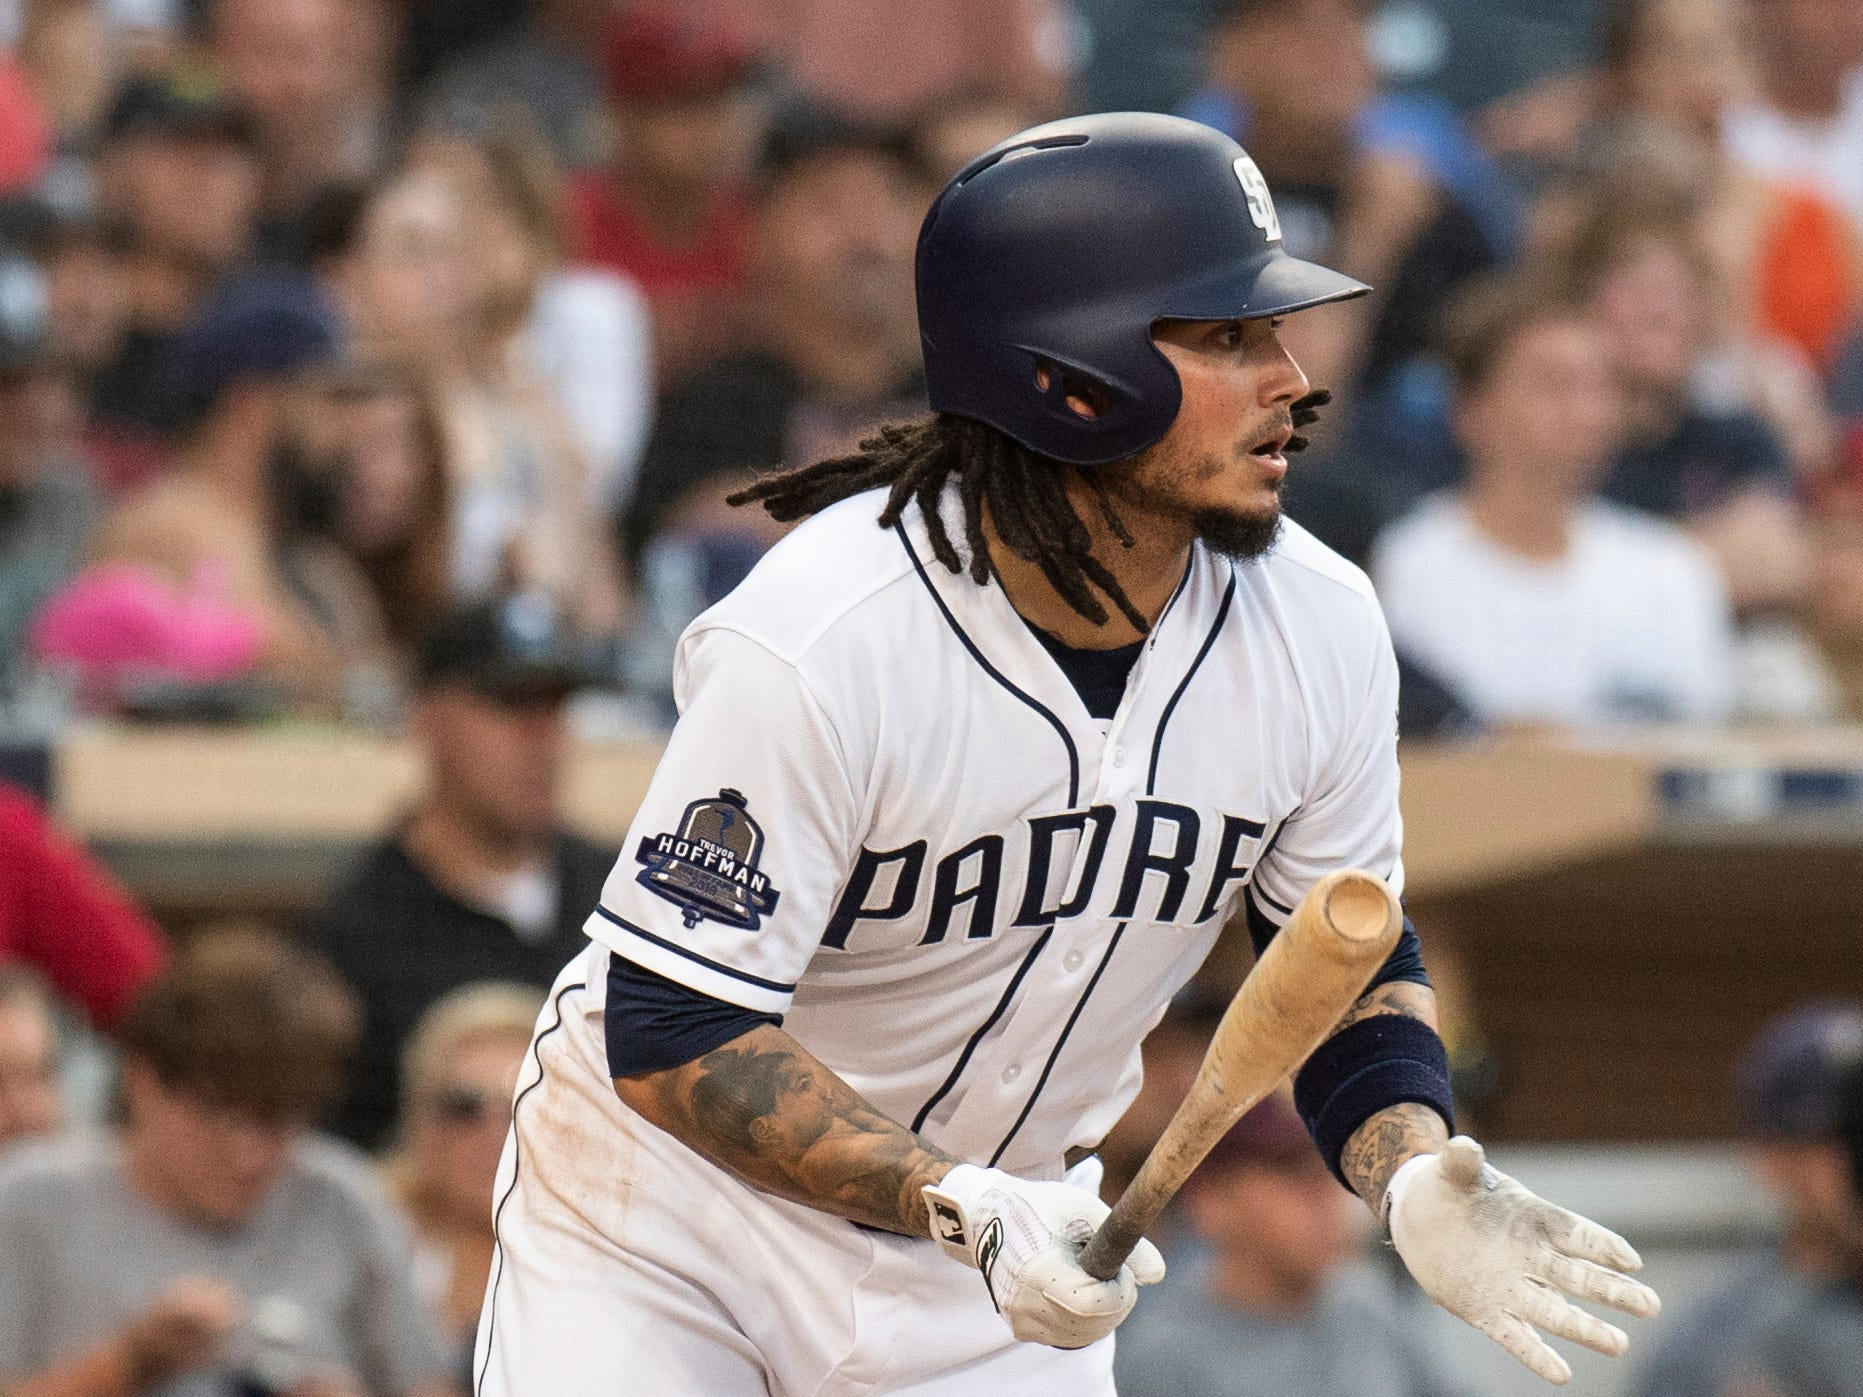 San Diego Padres' Freddy Galvis hits a two-run single during the fourth inning of a baseball game against the Arizona Diamondbacks in San Diego, Saturday, Aug. 18, 2018. (AP Photo/Kyusung Gong)